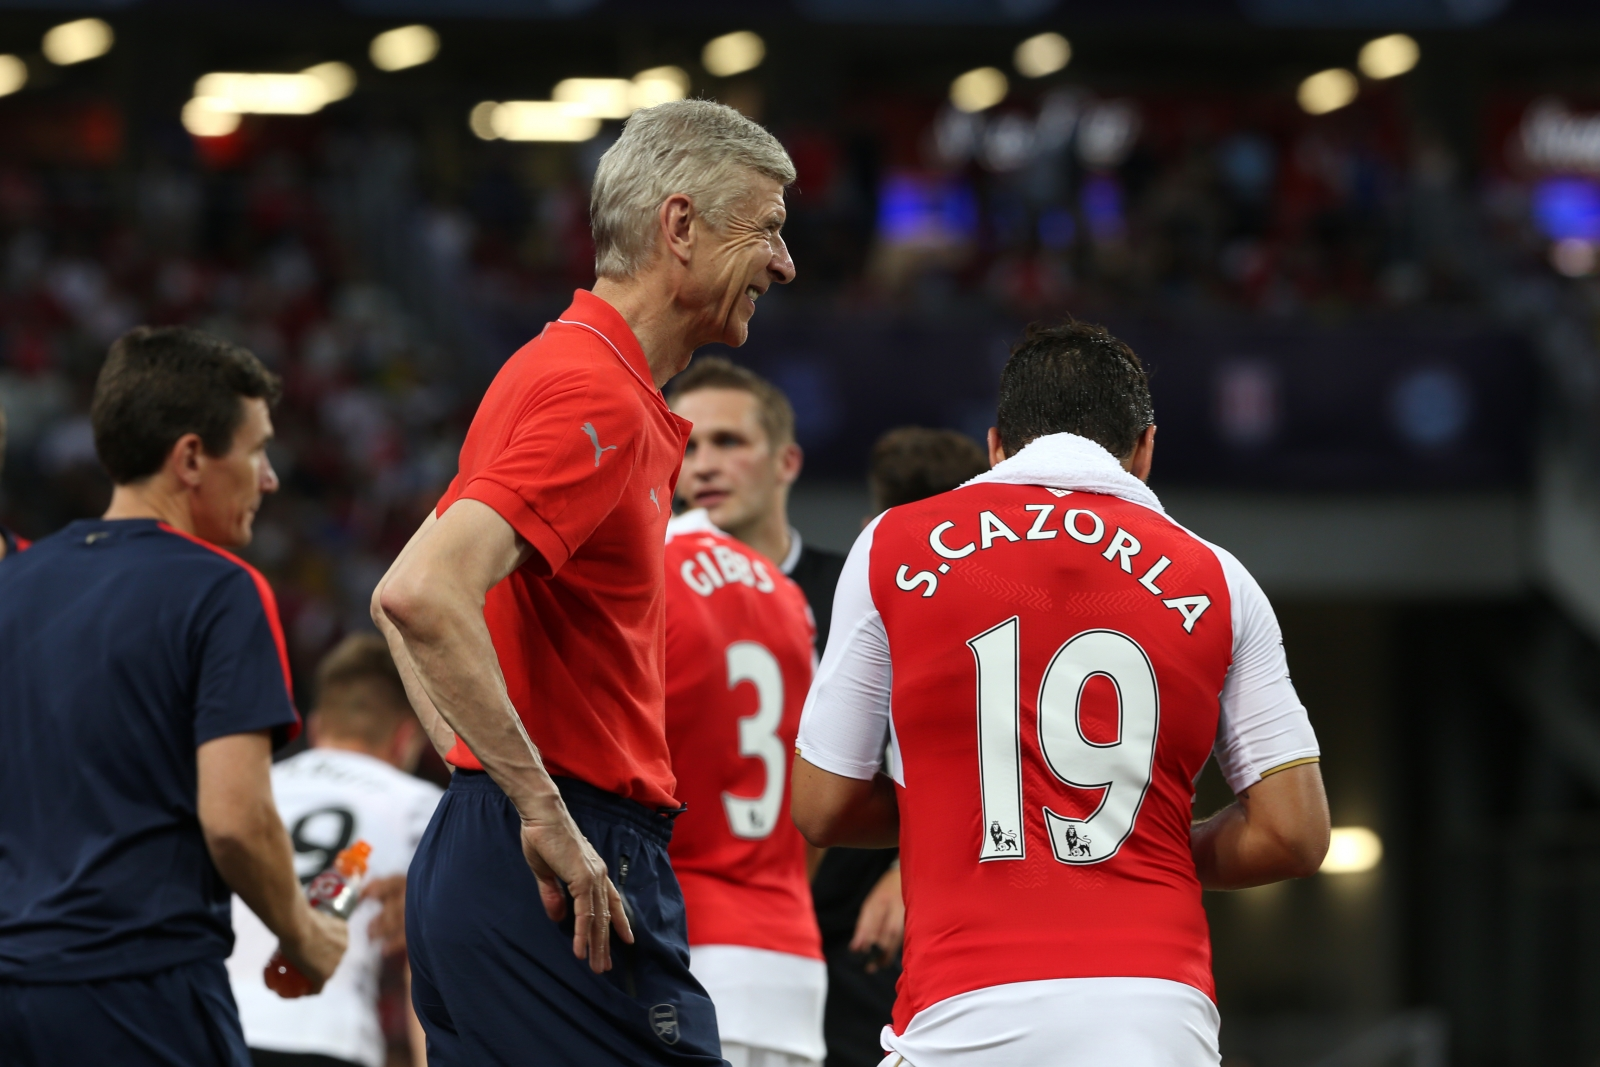 Santi Cazorla believes Arsene Wenger could continue at Arsenal